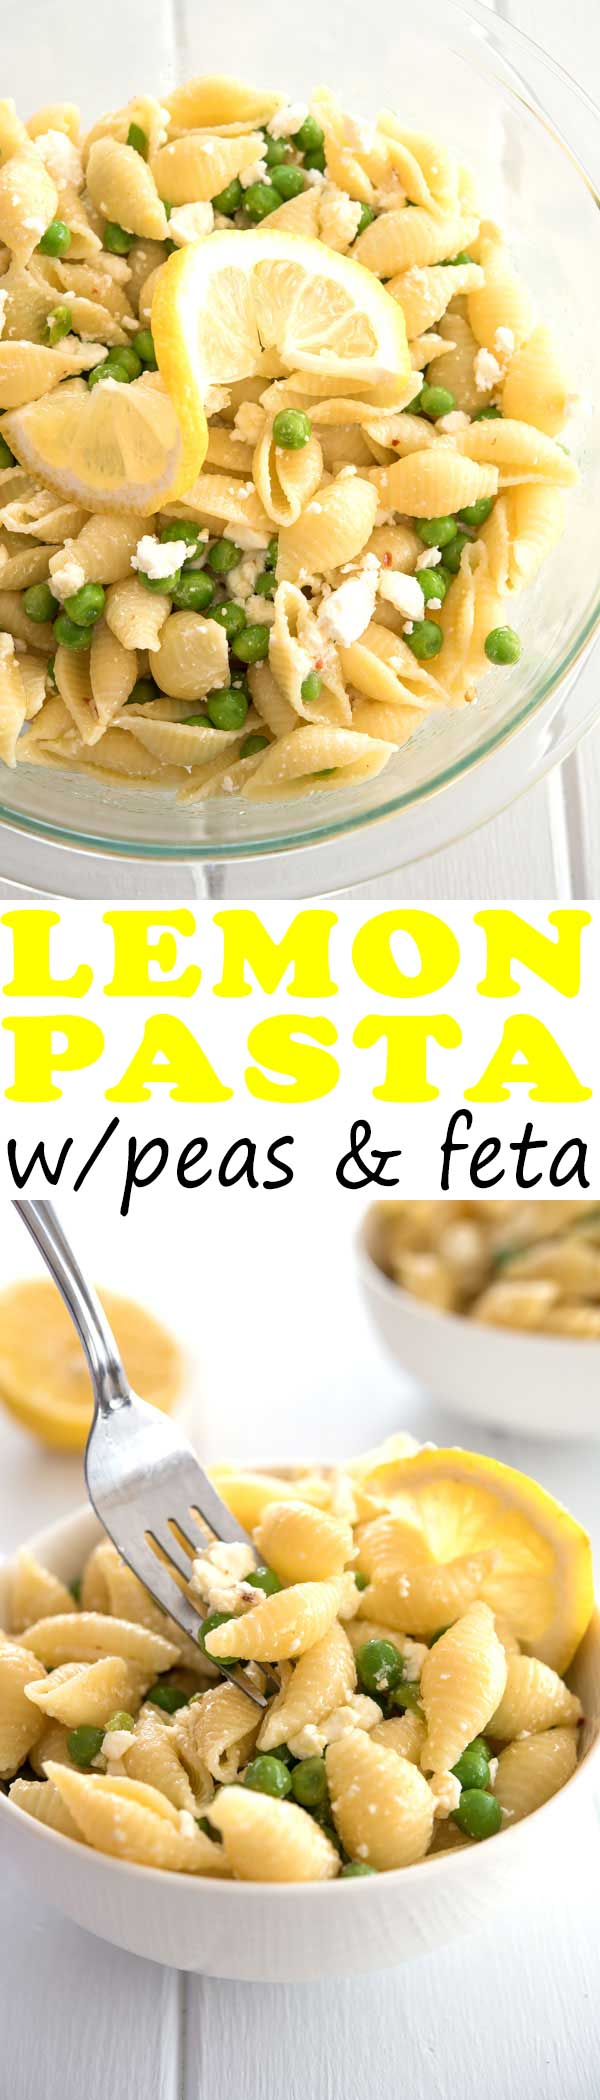 My husband said he could eat this lemon pasta salad everyday for lunch! Next time I'll use broccoli and parmesan with the garlic sauce. #dinner #dinnerrecipes #easydinner #mealprep